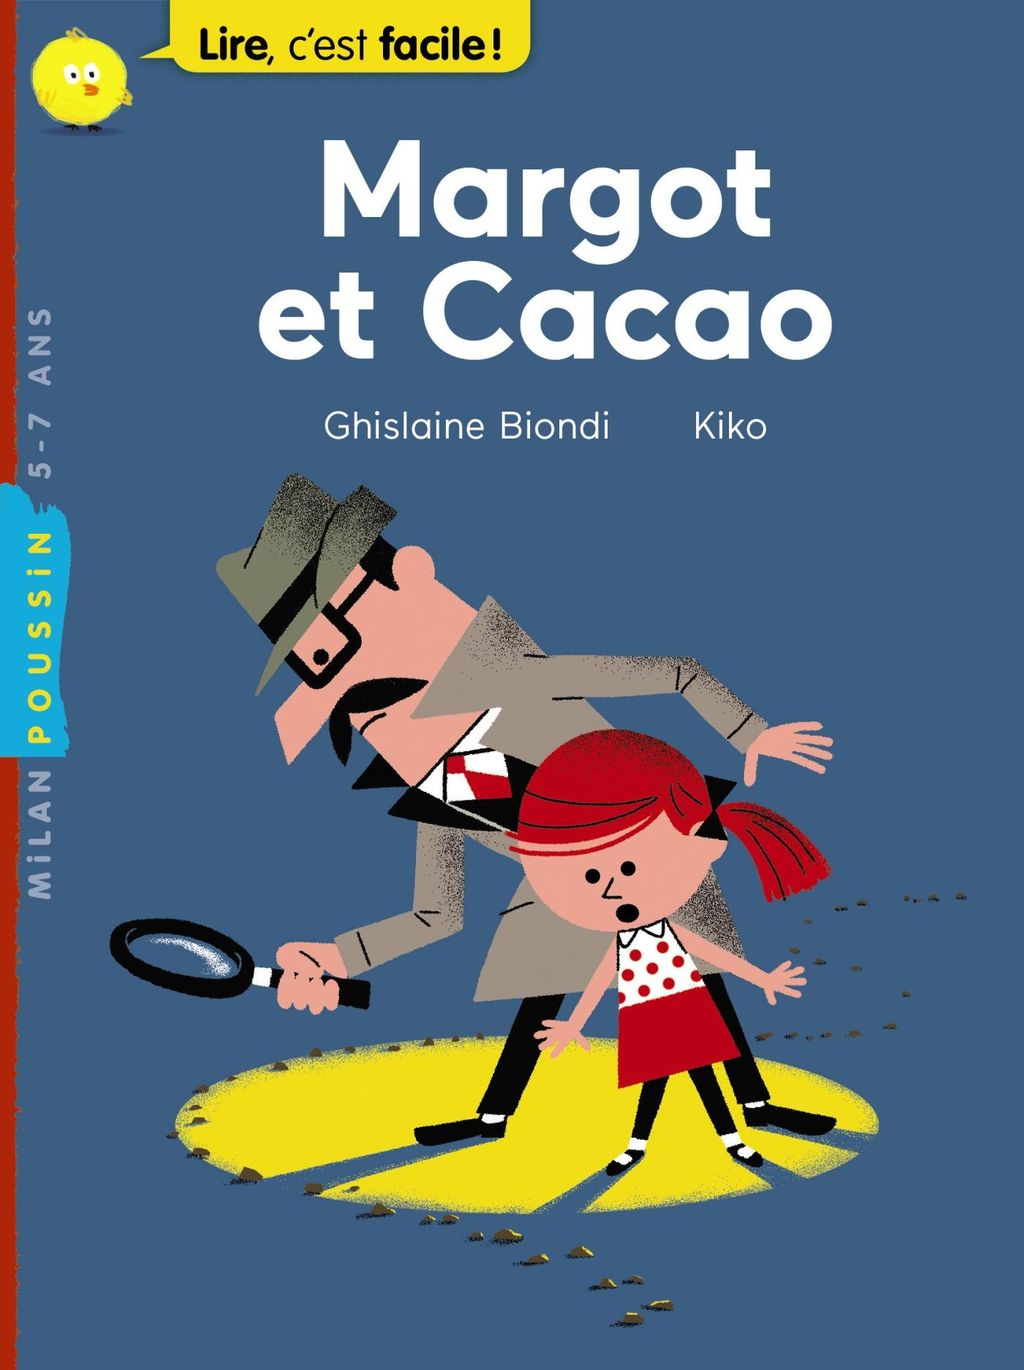 « Margot et cacao » cover